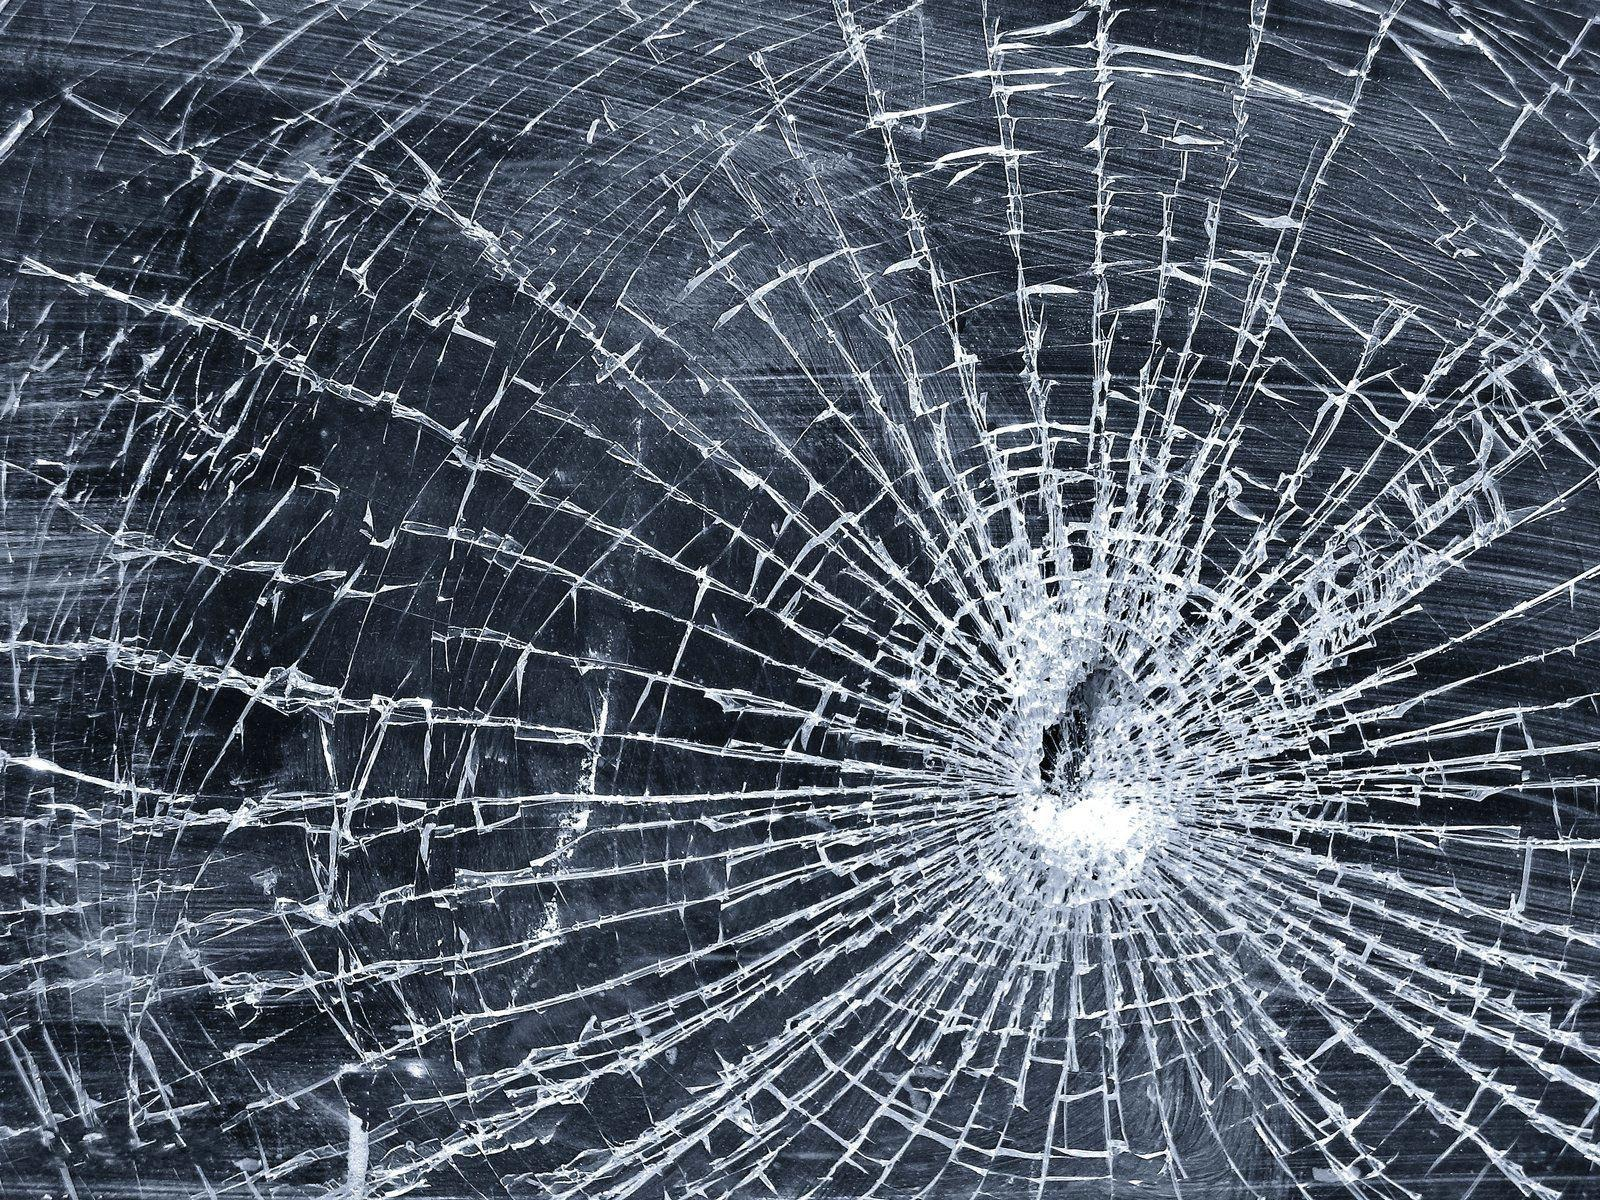 3D Broken Glass 11 11604 HD Images Wallpapers